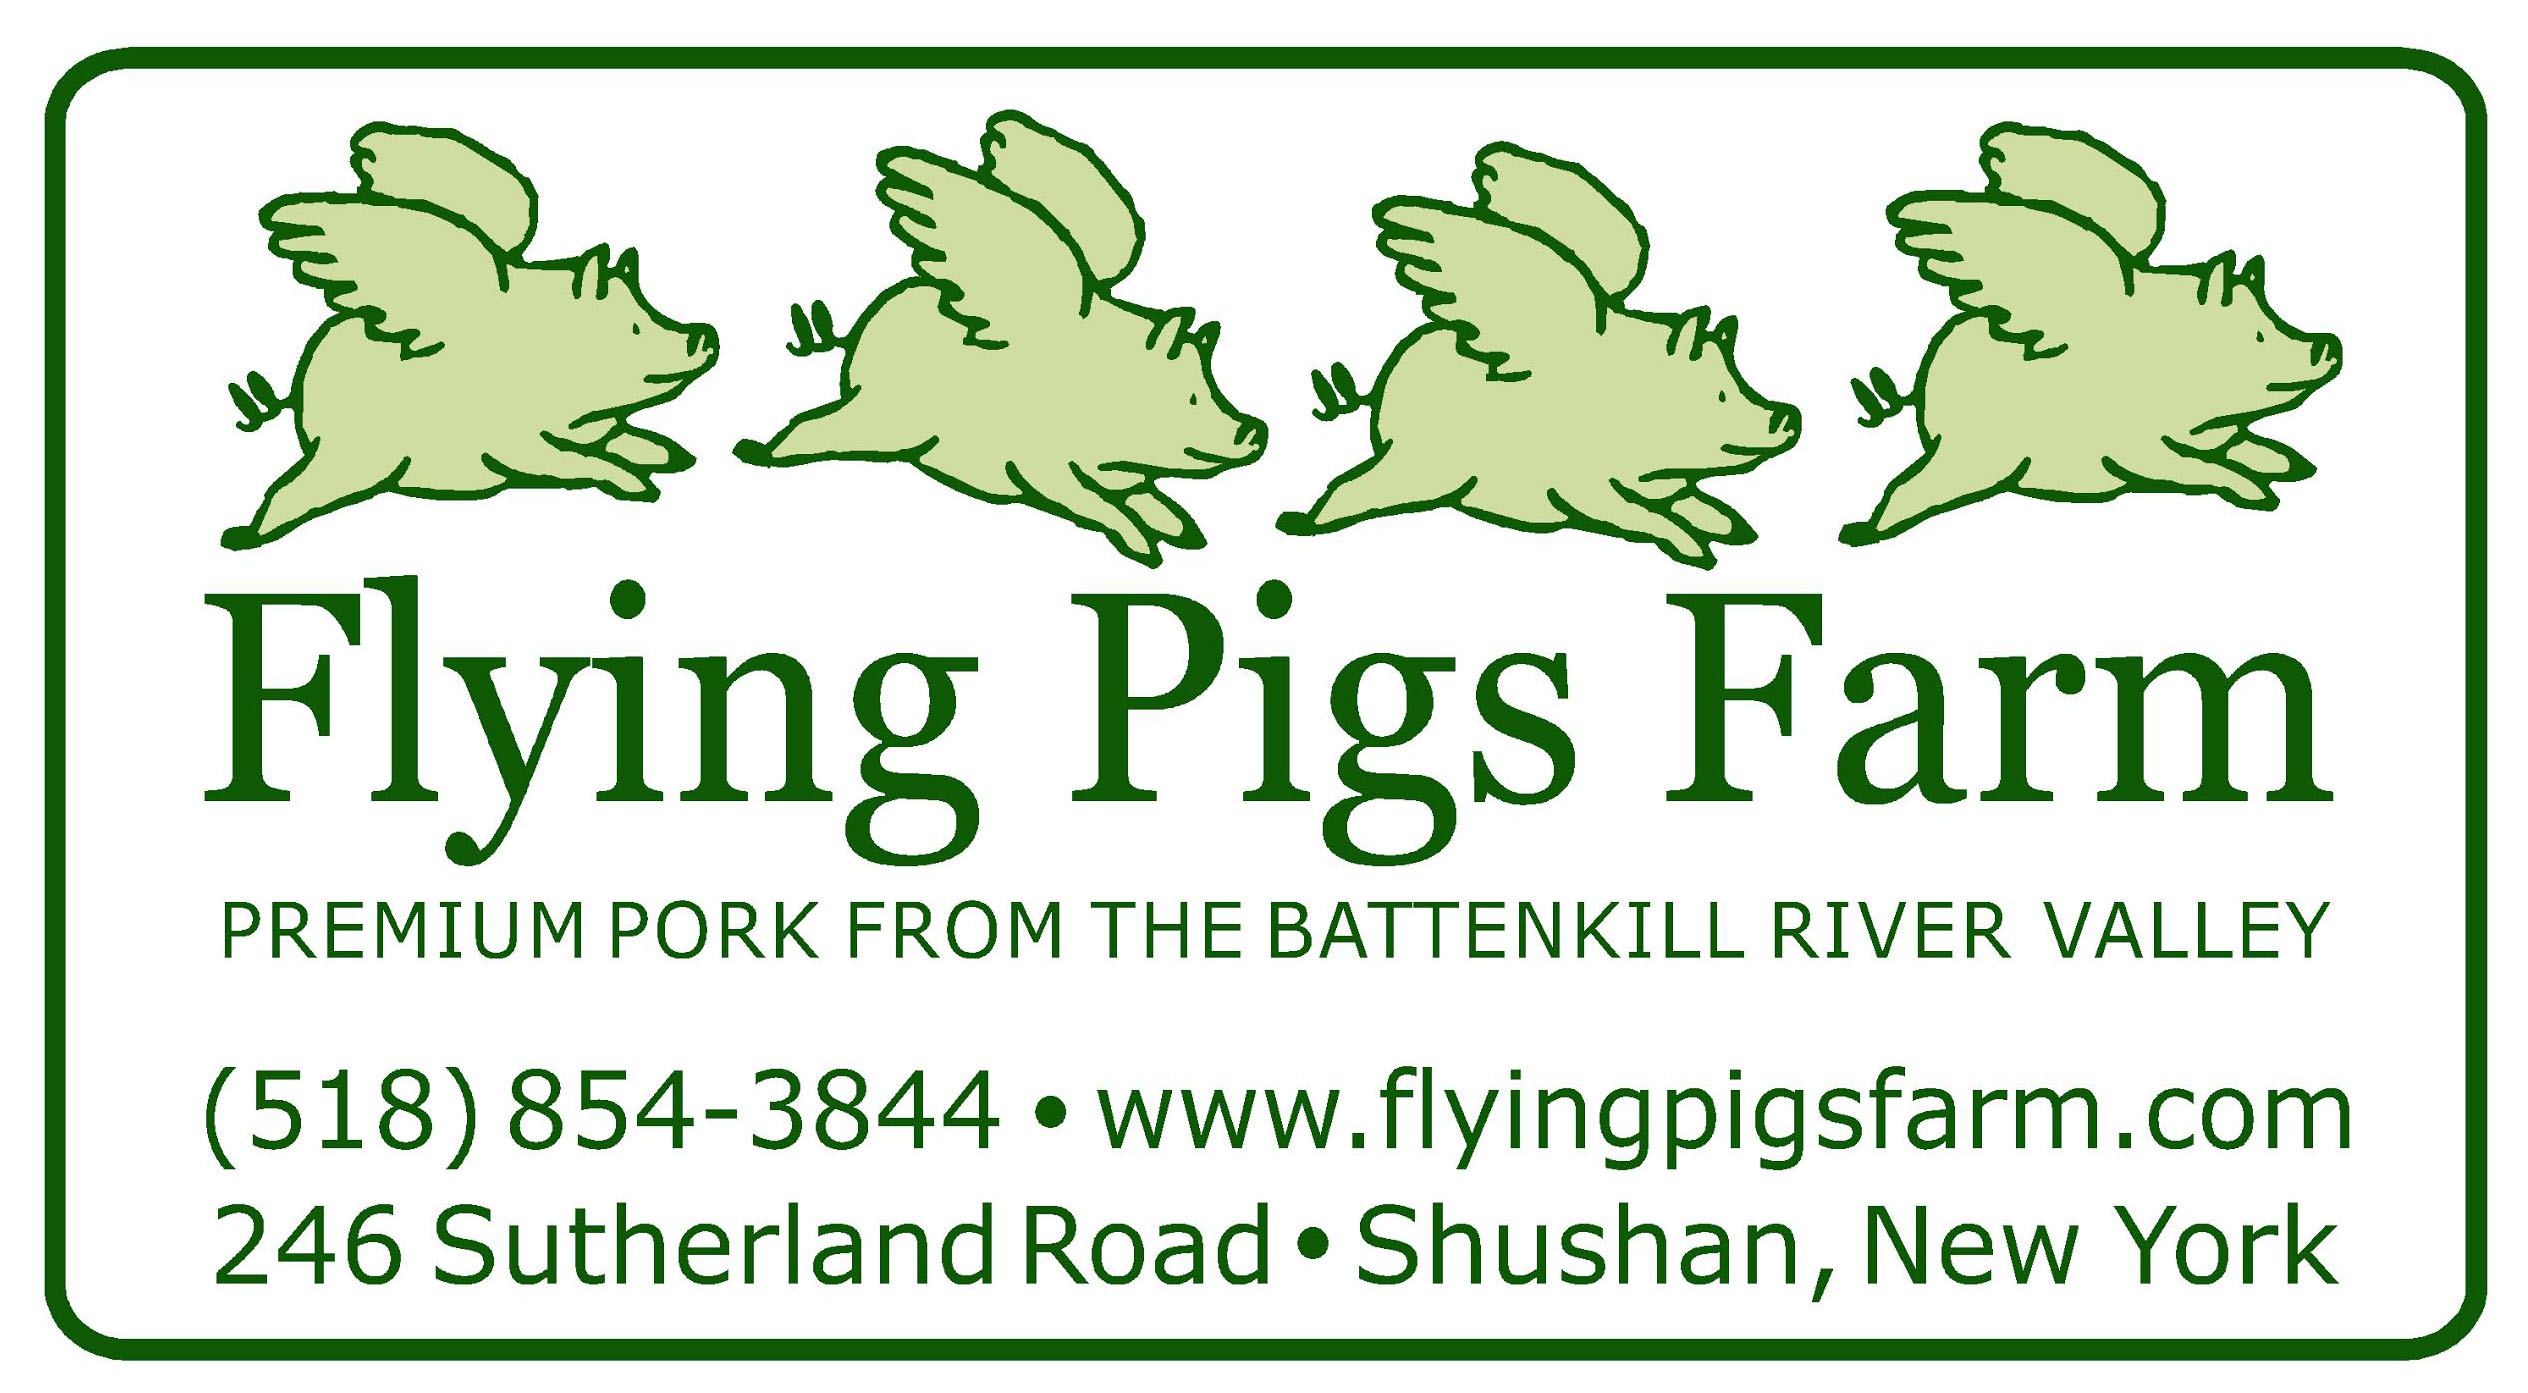 Flying Pig Farms